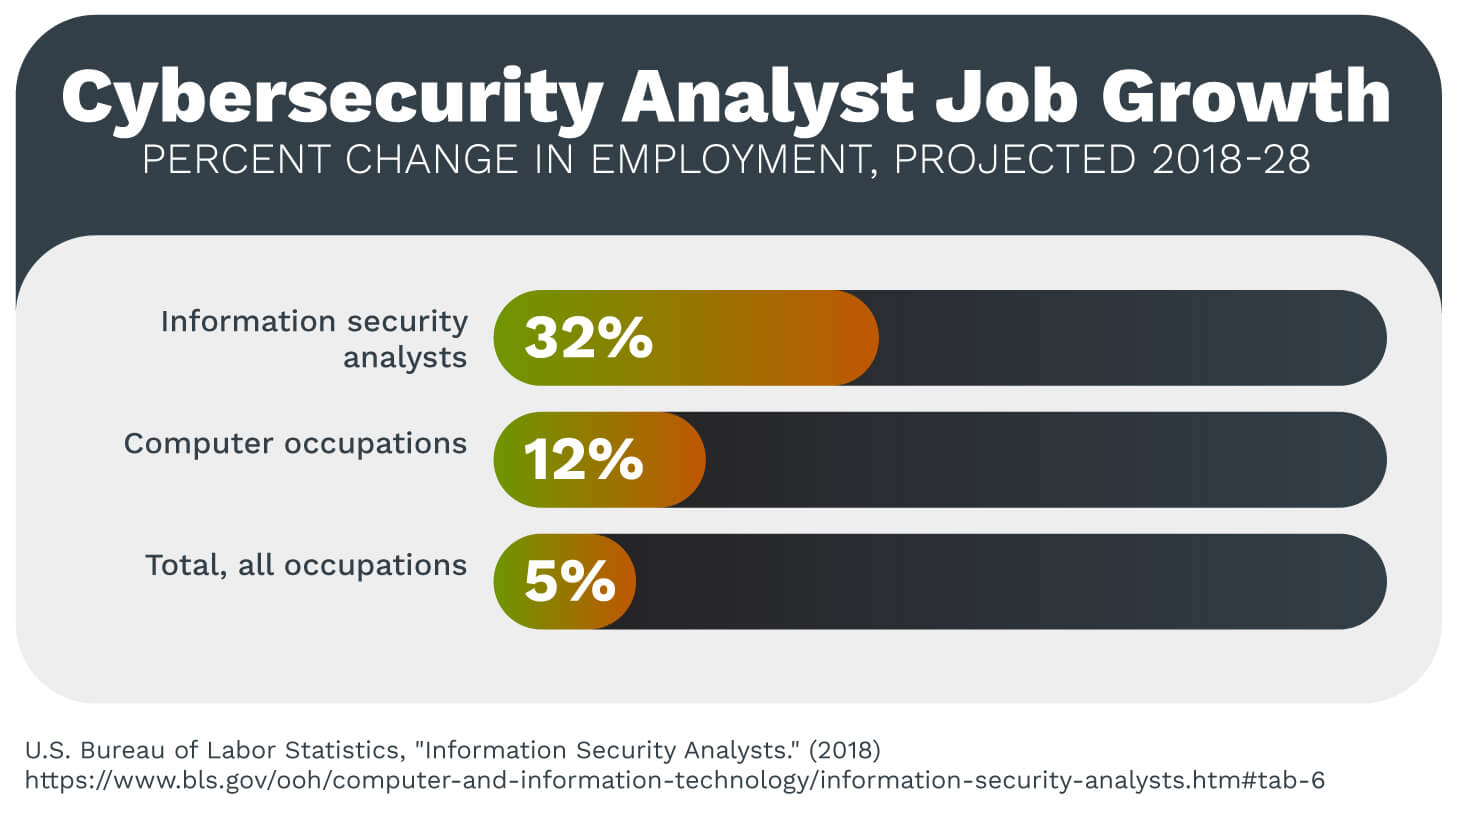 A chart showing projected cybersecurity analyst job growth